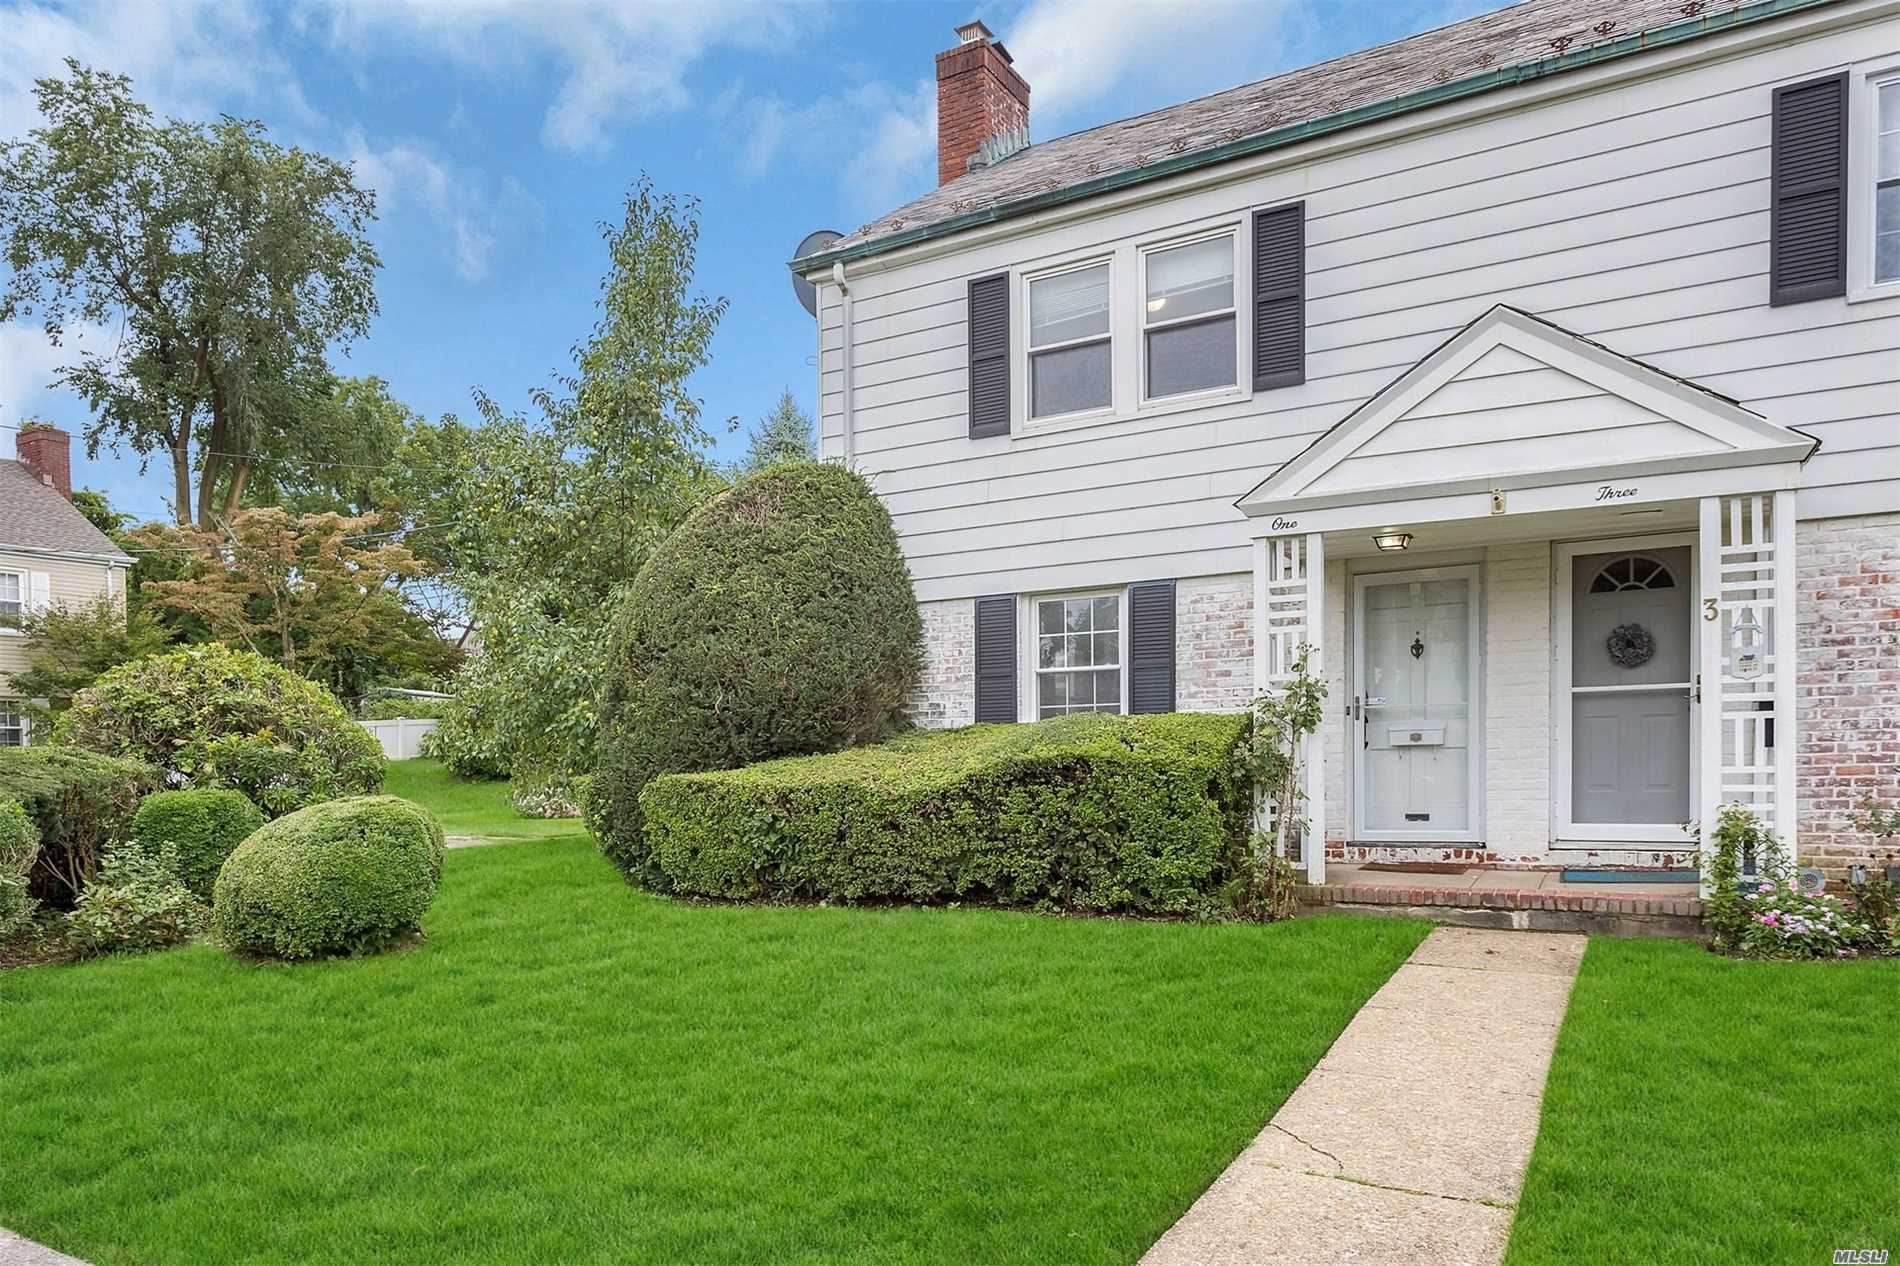 Bright, Sunny And Updated ,  Extended With High Ceiling Dining Room And Eik-Granite Counter Top. Close To Lirr, Schools And Shops. Good For Starter, Retirement And Investment Home. Low Taxes.